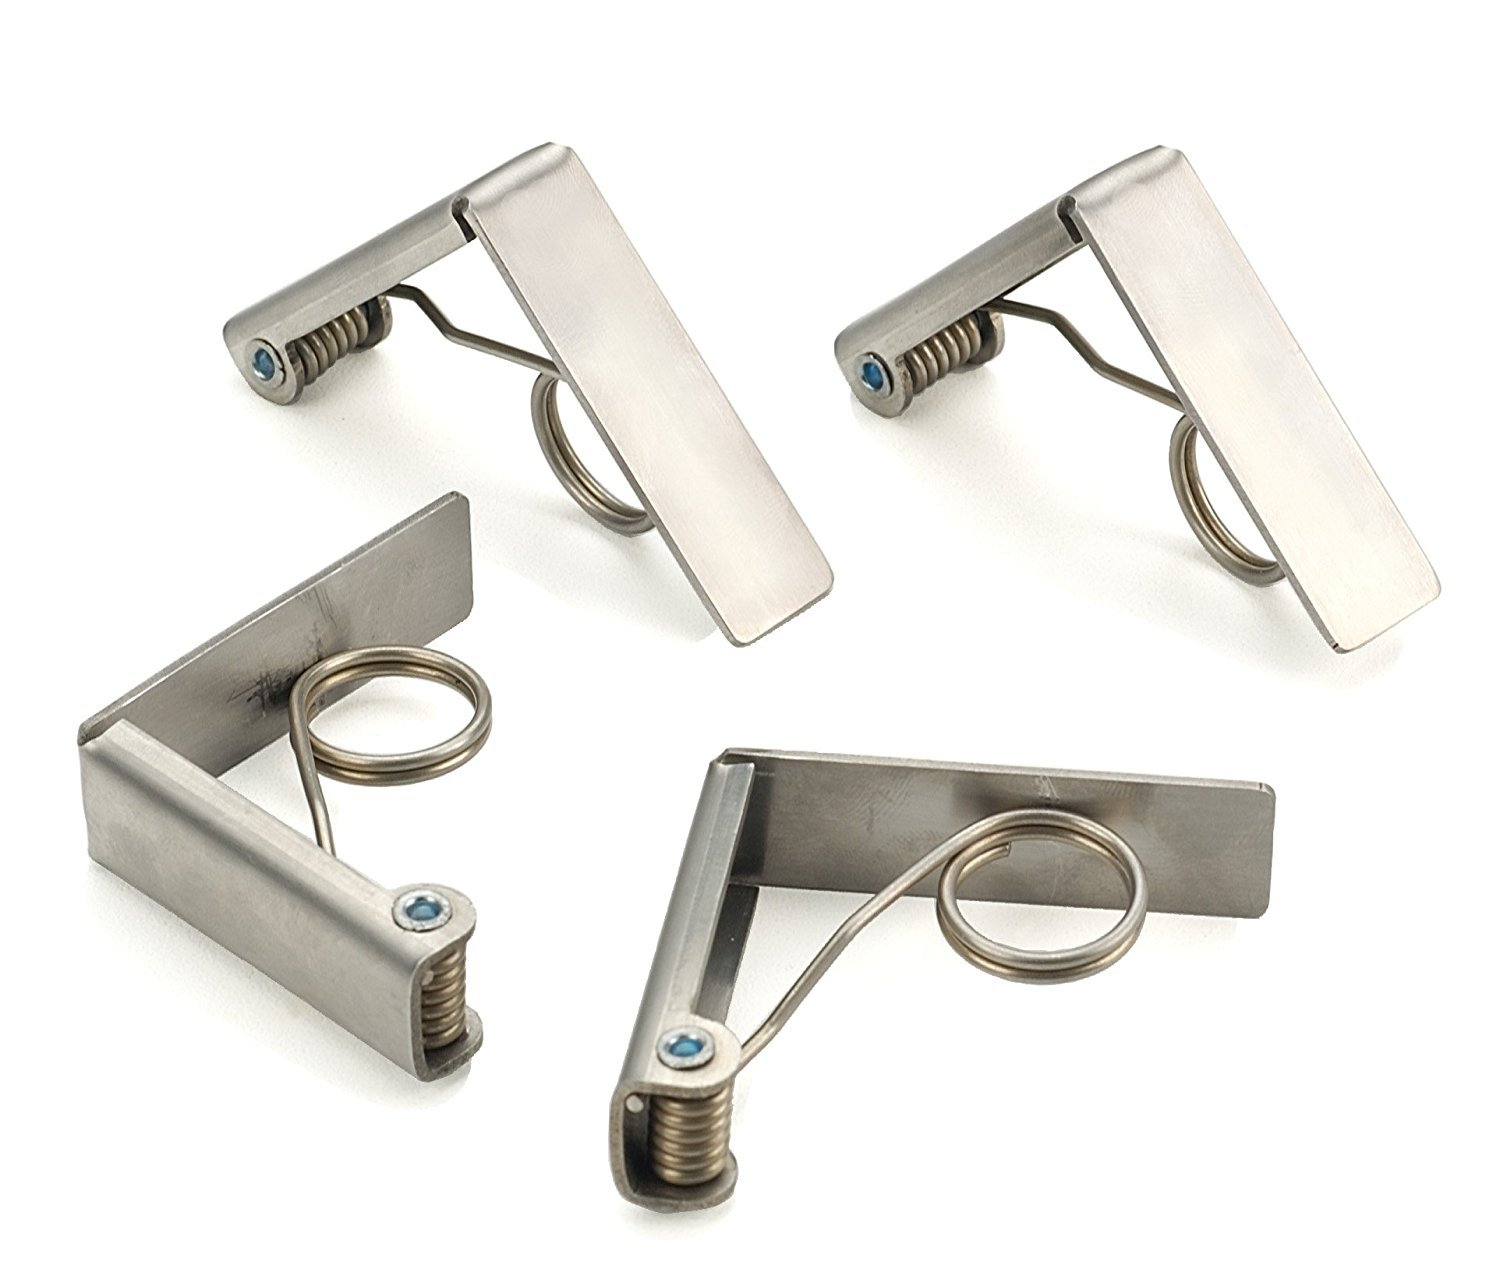 M-Aimee Stainless Steel Tablecloth Clips,Table Cloth Cover Clamps for Outdoor and Indoor, 6 Pack,Silver